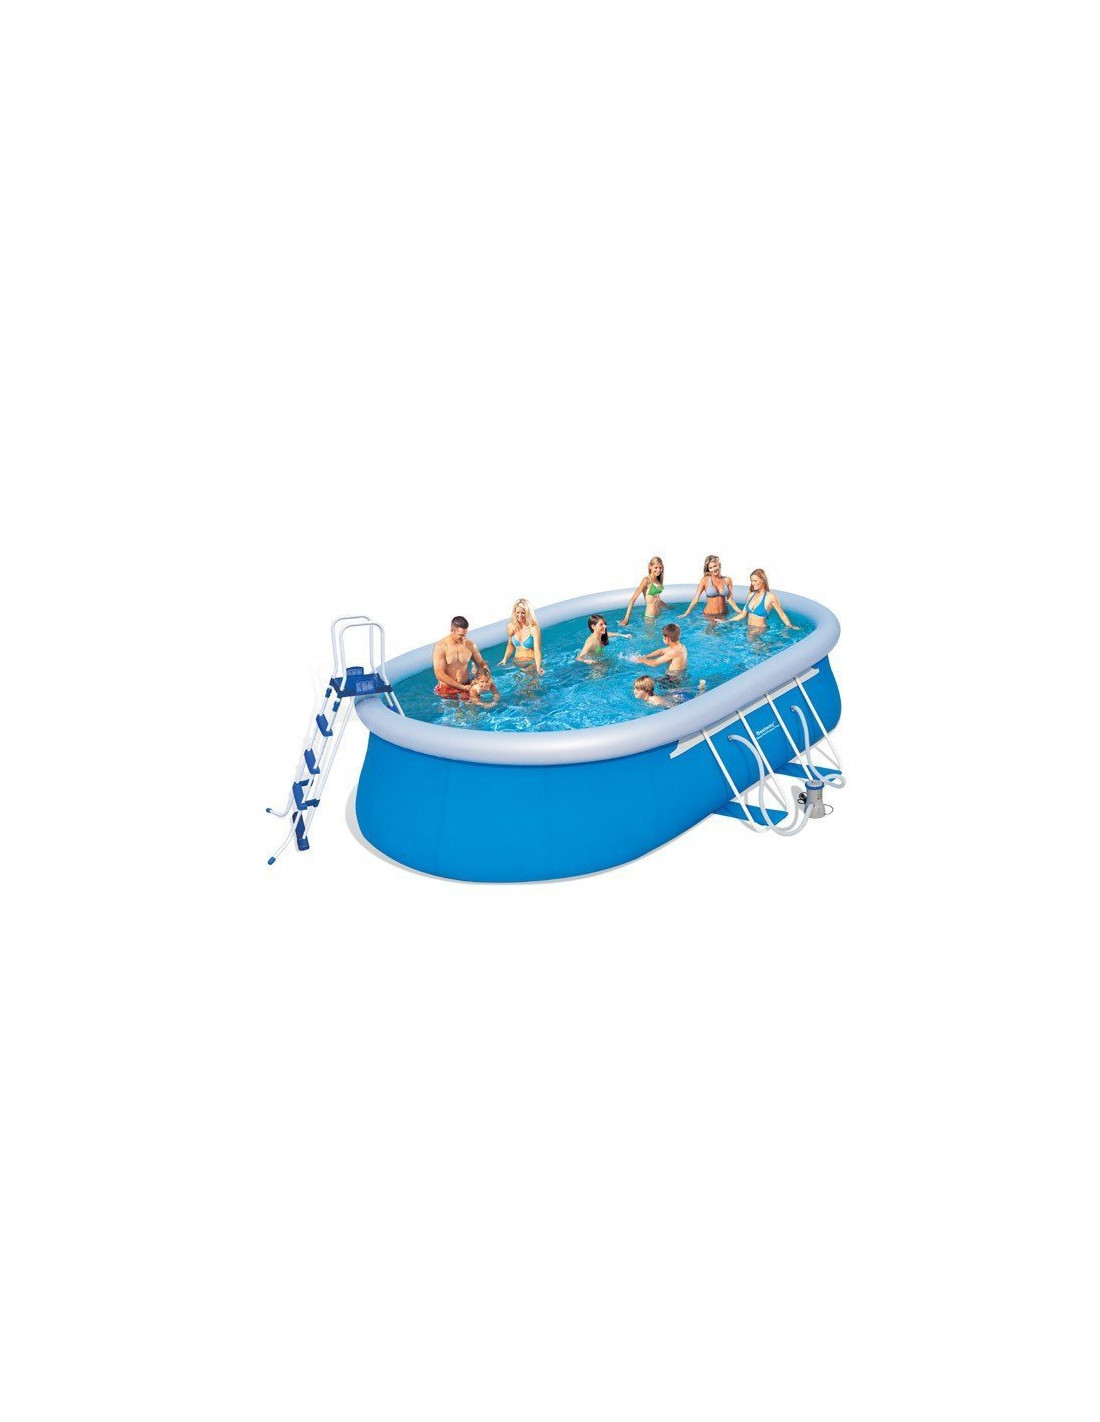 Piscine autoportante ovale bestway avec filtration cartouche for Piscine autoportante ovale